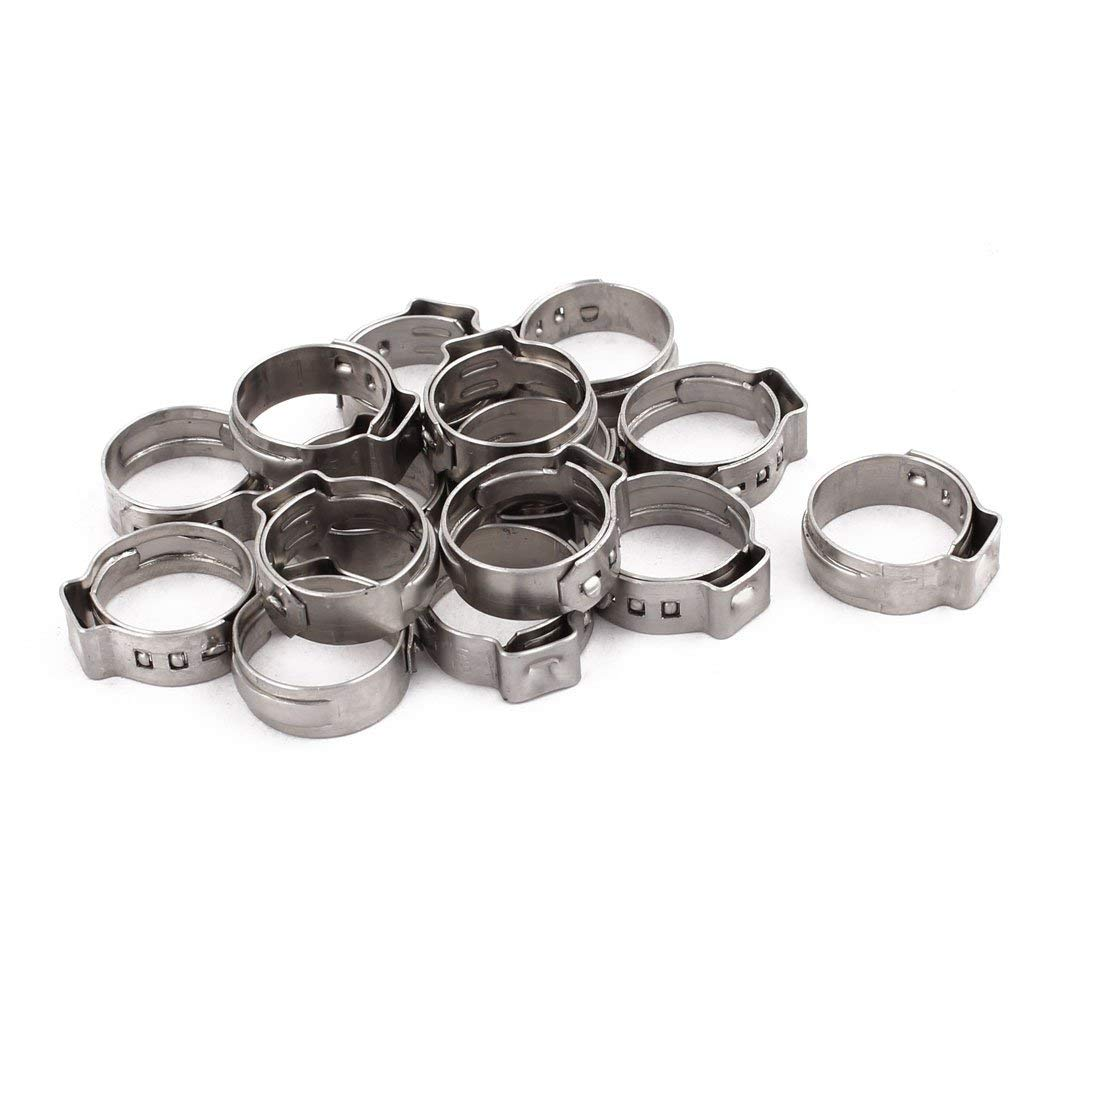 uxcell 13.7mm-16.2mm 304 Stainless Steel Adjustable Tube Hose Clamps Silver Tone 15pcs